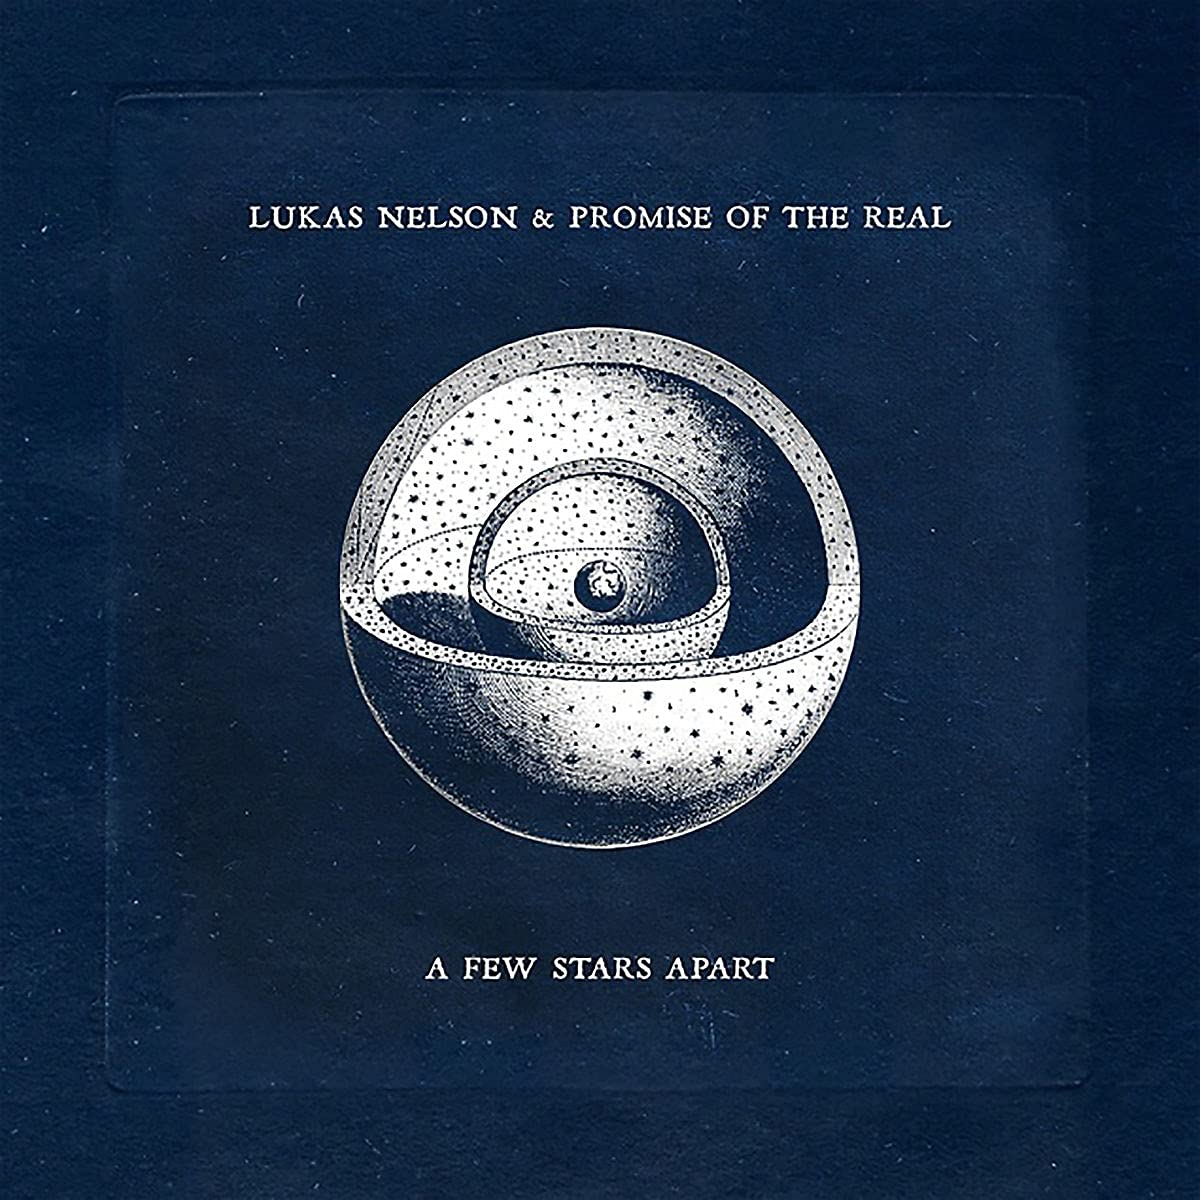 Lukas Nelson & Promise Of The Real - A Few Stars Apart (2021) [FLAC] Download